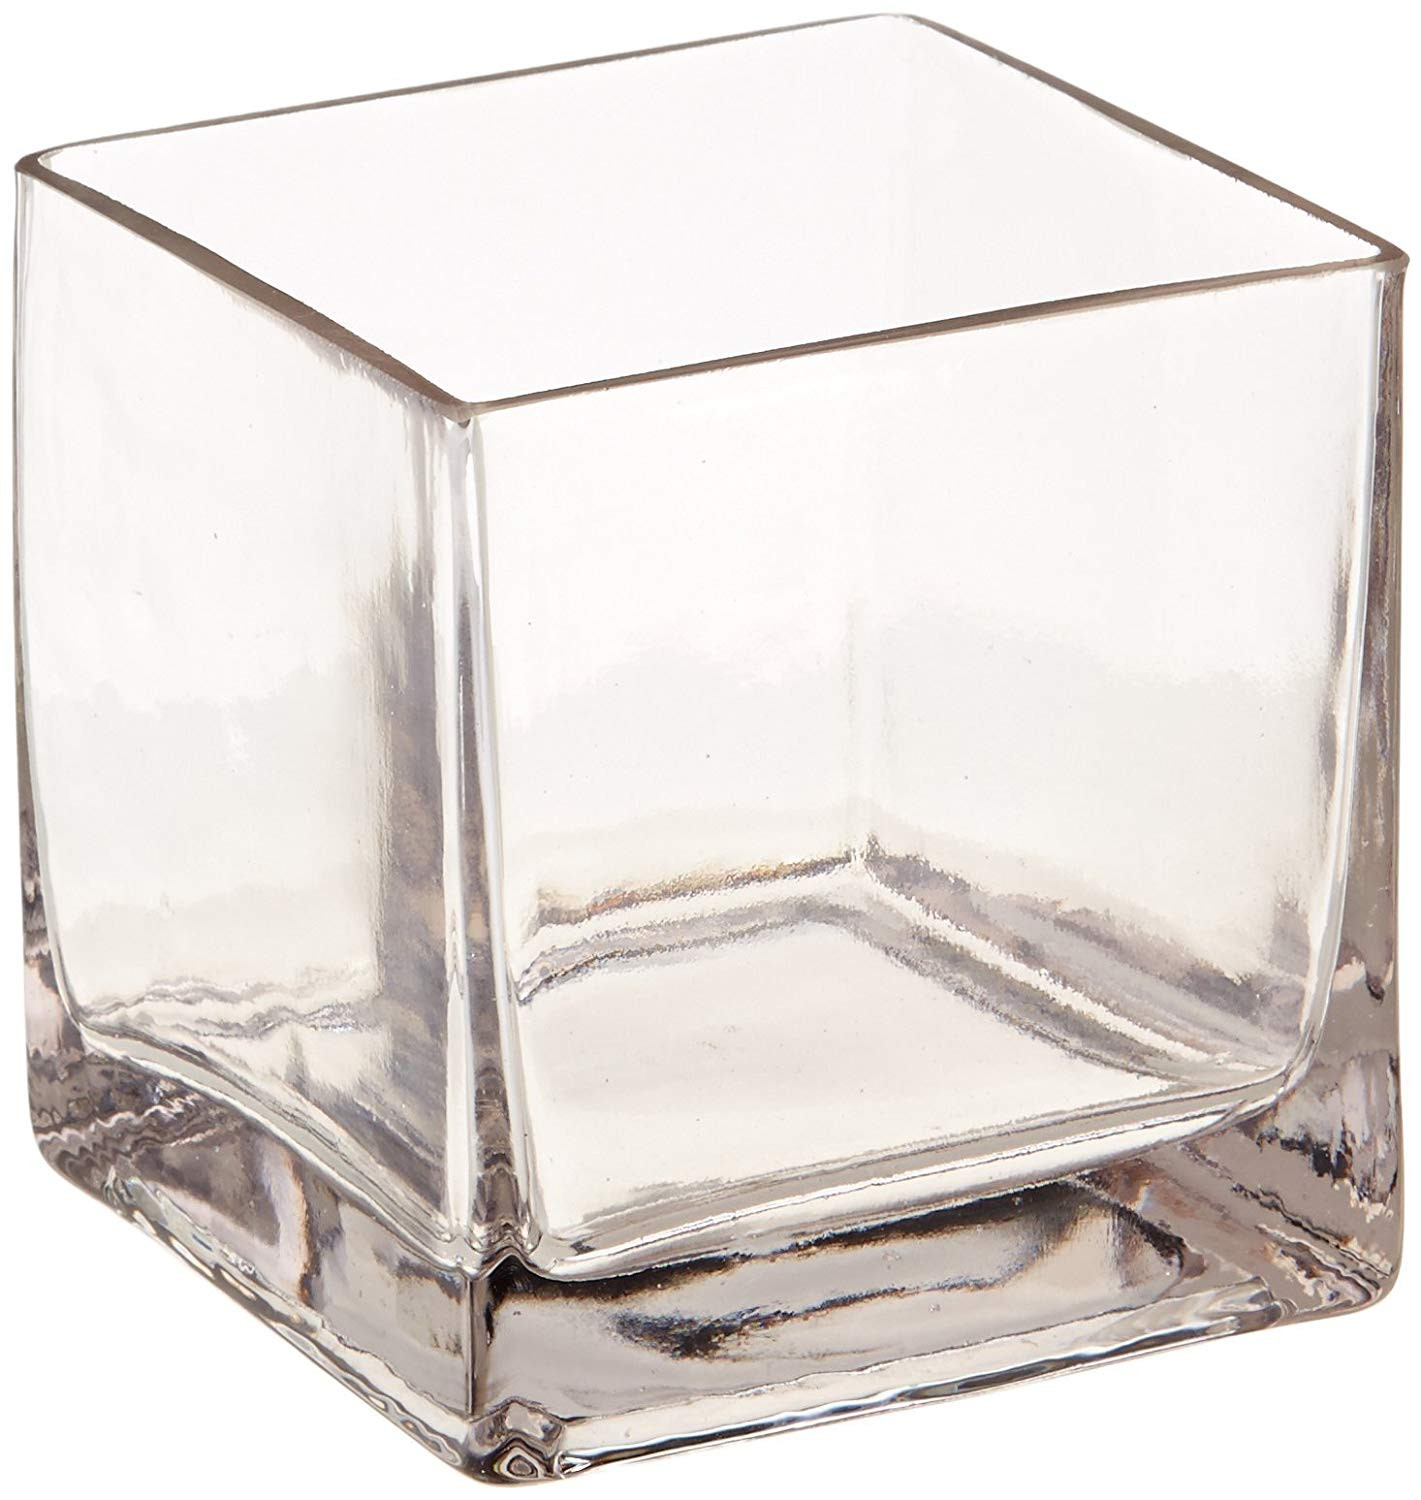 square flower vases wholesale of amazon com 12piece 4 square crystal clear glass vase home kitchen in 71 jezfmvnl sl1500